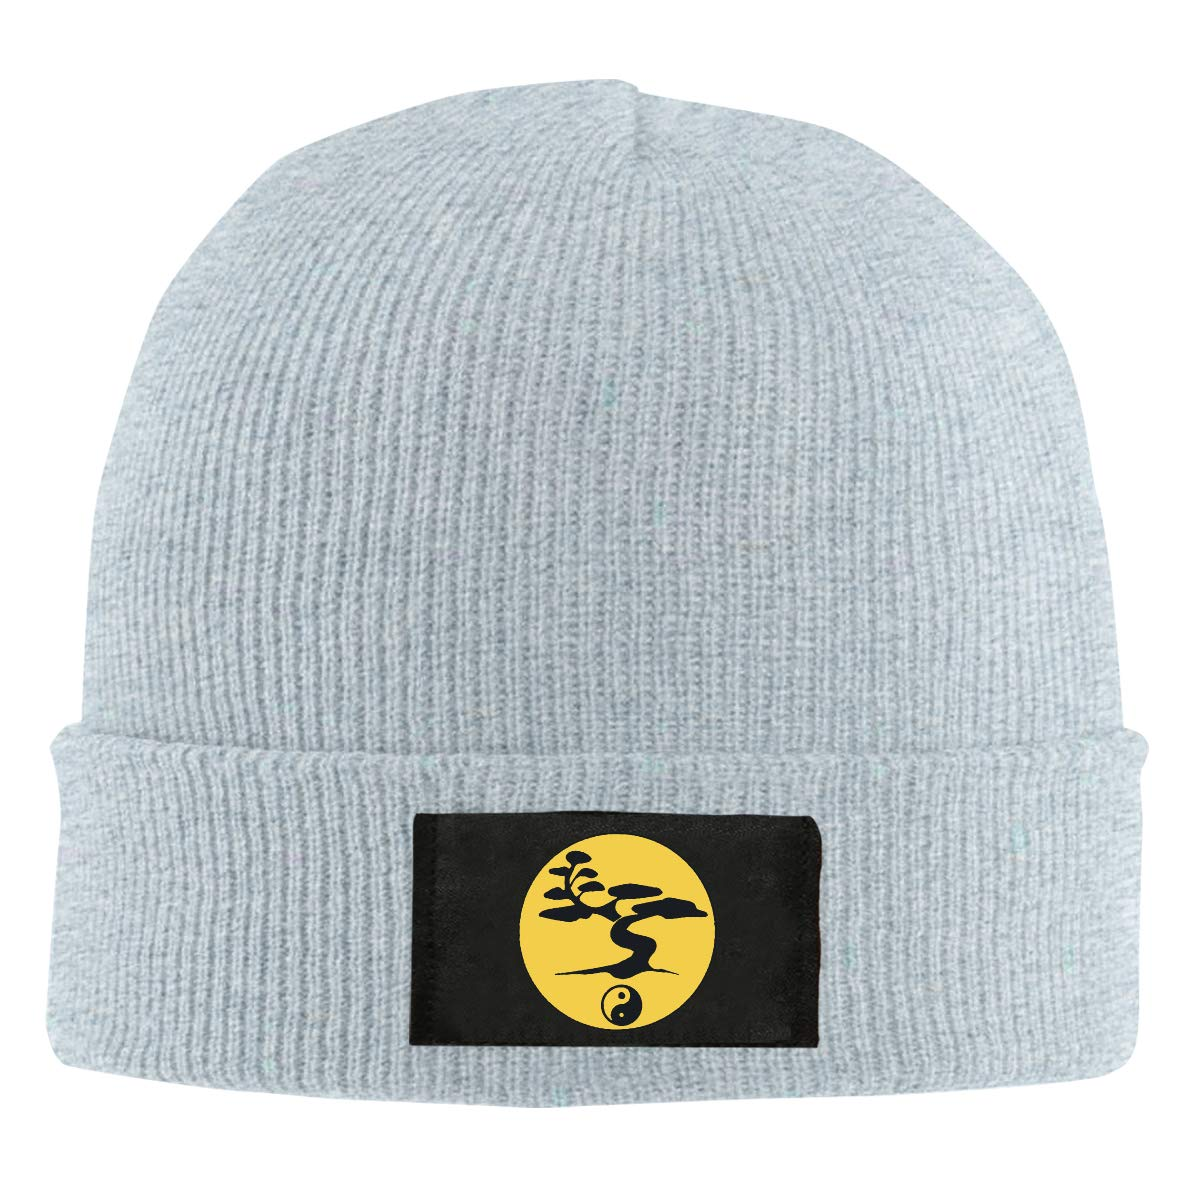 Men Women Yin Yang Bonsai Tree Skull Hat Beanie Cap Winter Knit Hat Cap